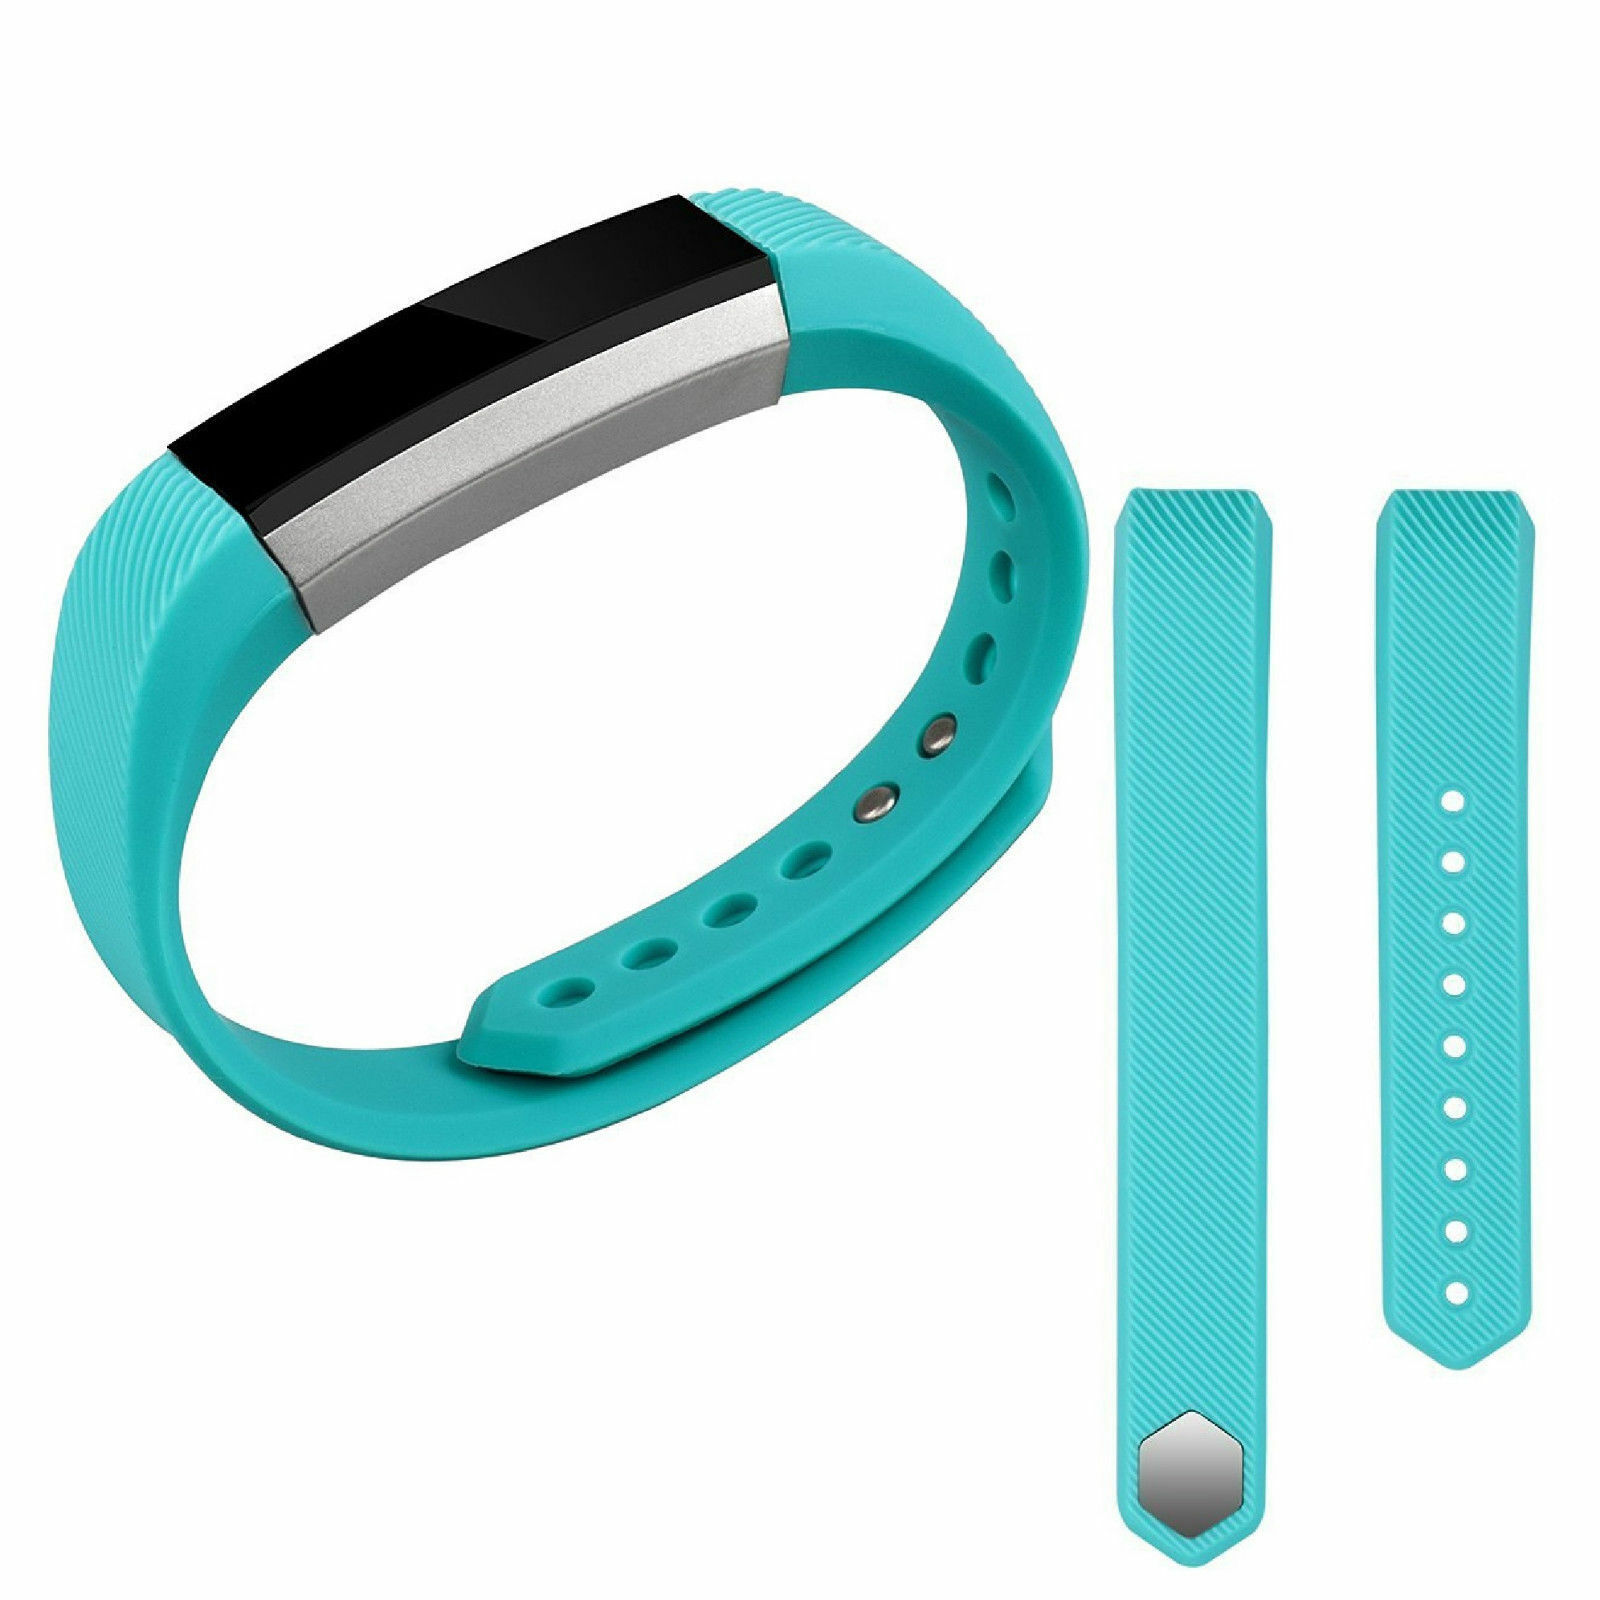 Replacement Silicone Wrist Band Strap For Fitbit Alta/ Fitbit Alta HR Turquoise